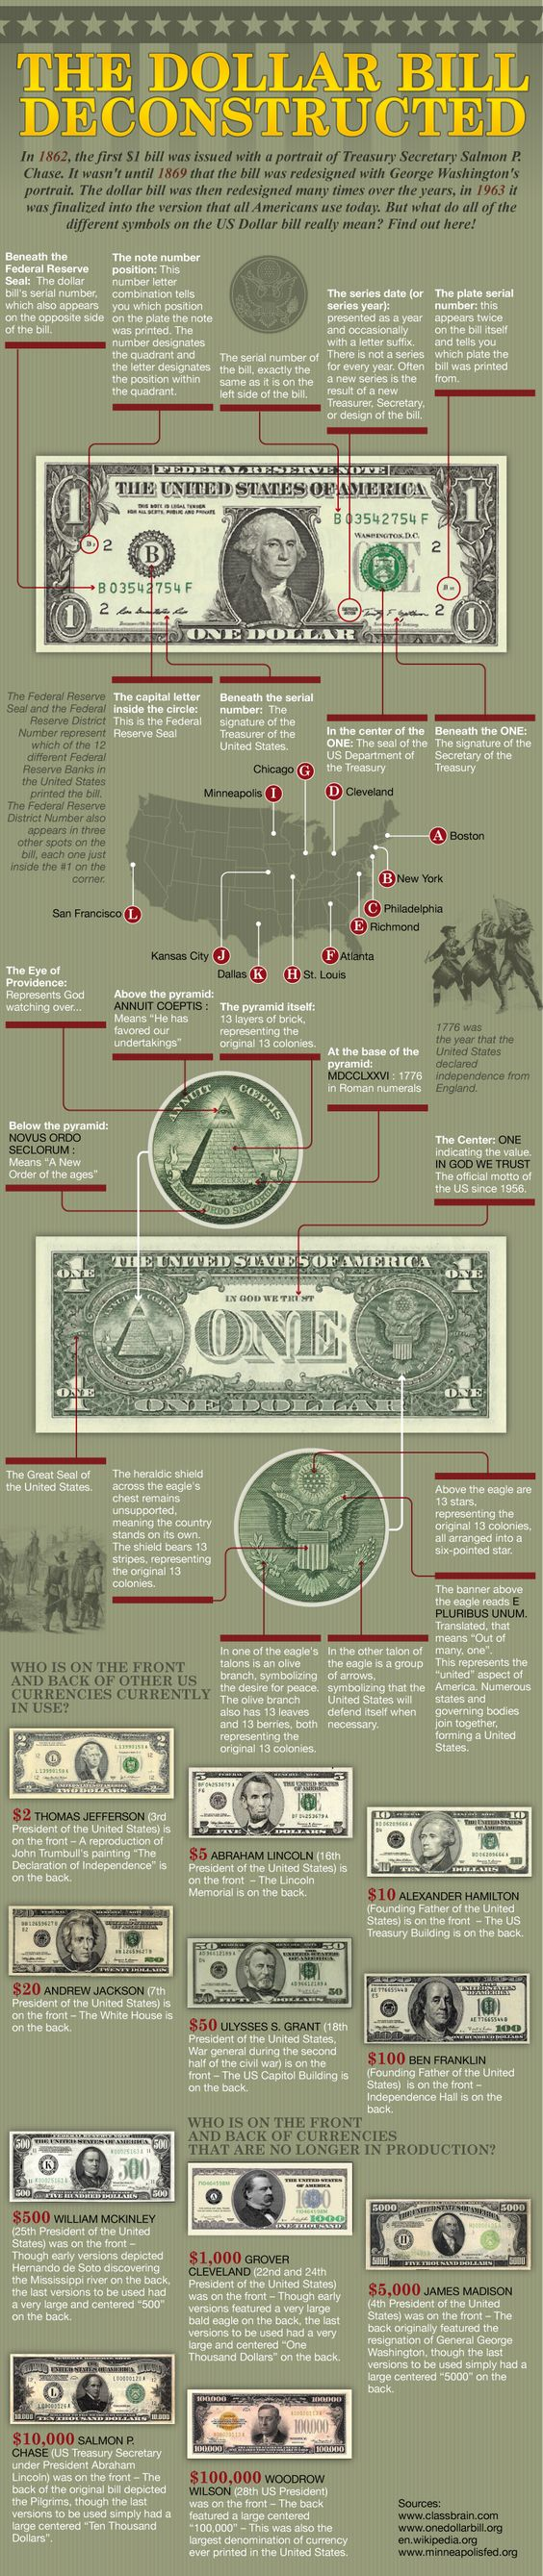 The US dollar bill has been redesigned many times over the years, in 1963 it was finalized into the version that all Americans use today. But what do: